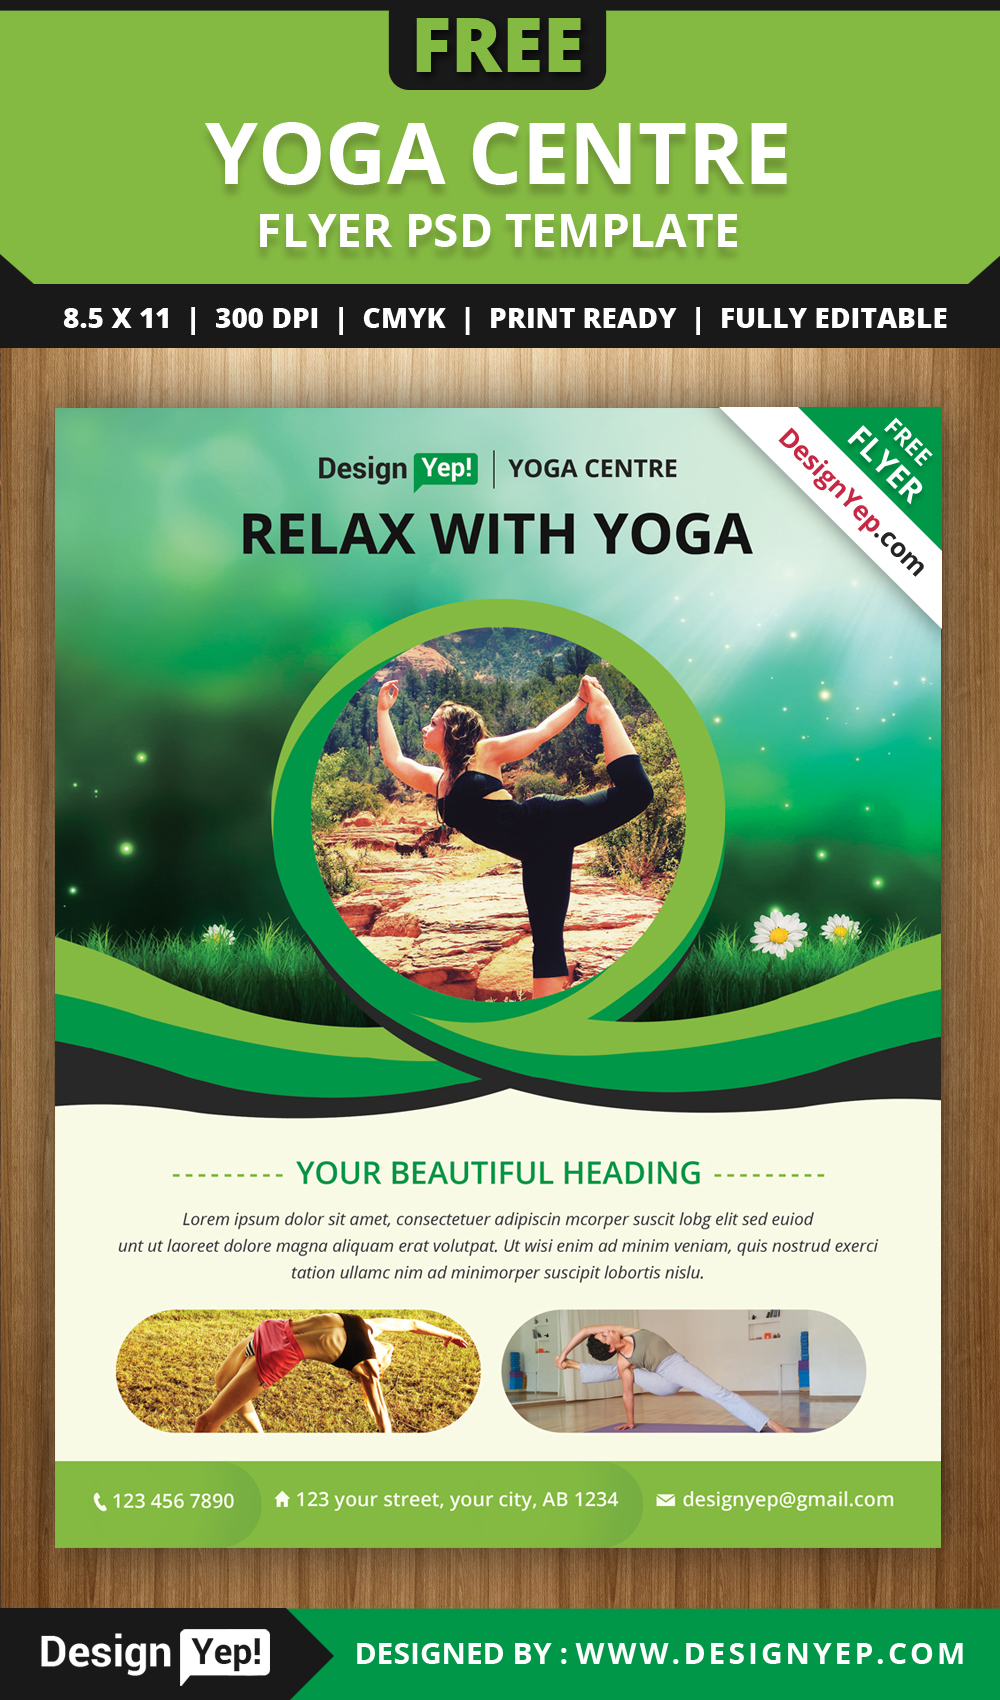 Free Yoga Flyer Psd Template For Download On Behance